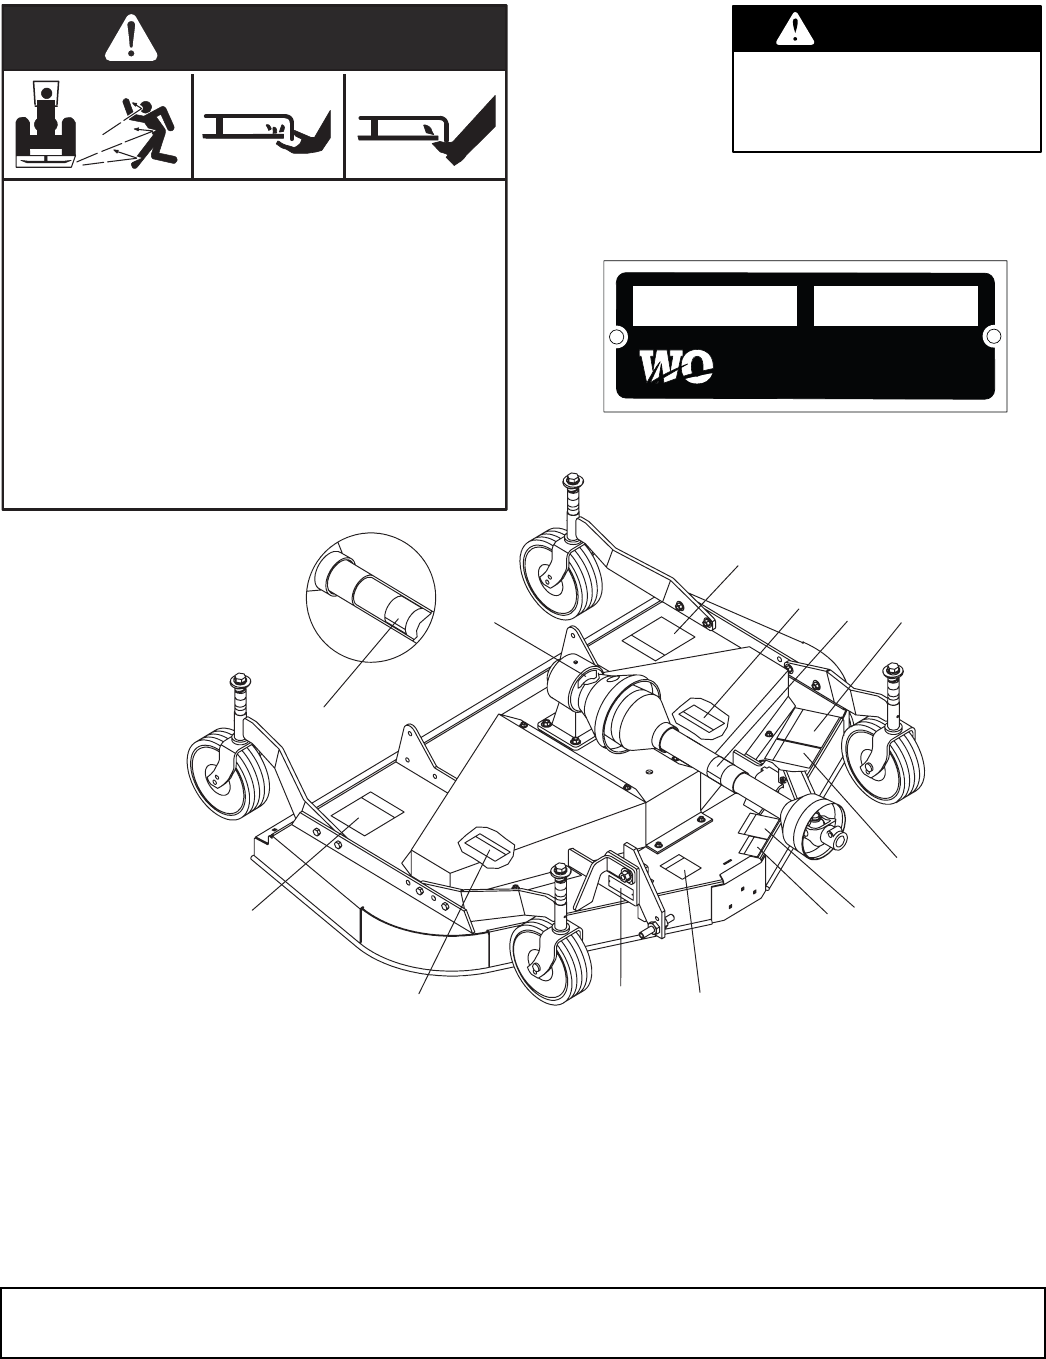 Lawn Mower Belt Keeps Breaking Find Solutions To Your Deck Belt together with Hydraulic System together with Small Lawn Mower Engine Diagram in addition John Deere 855 Wiring Schematic moreover Decals. on ransomes mower deck parts diagram